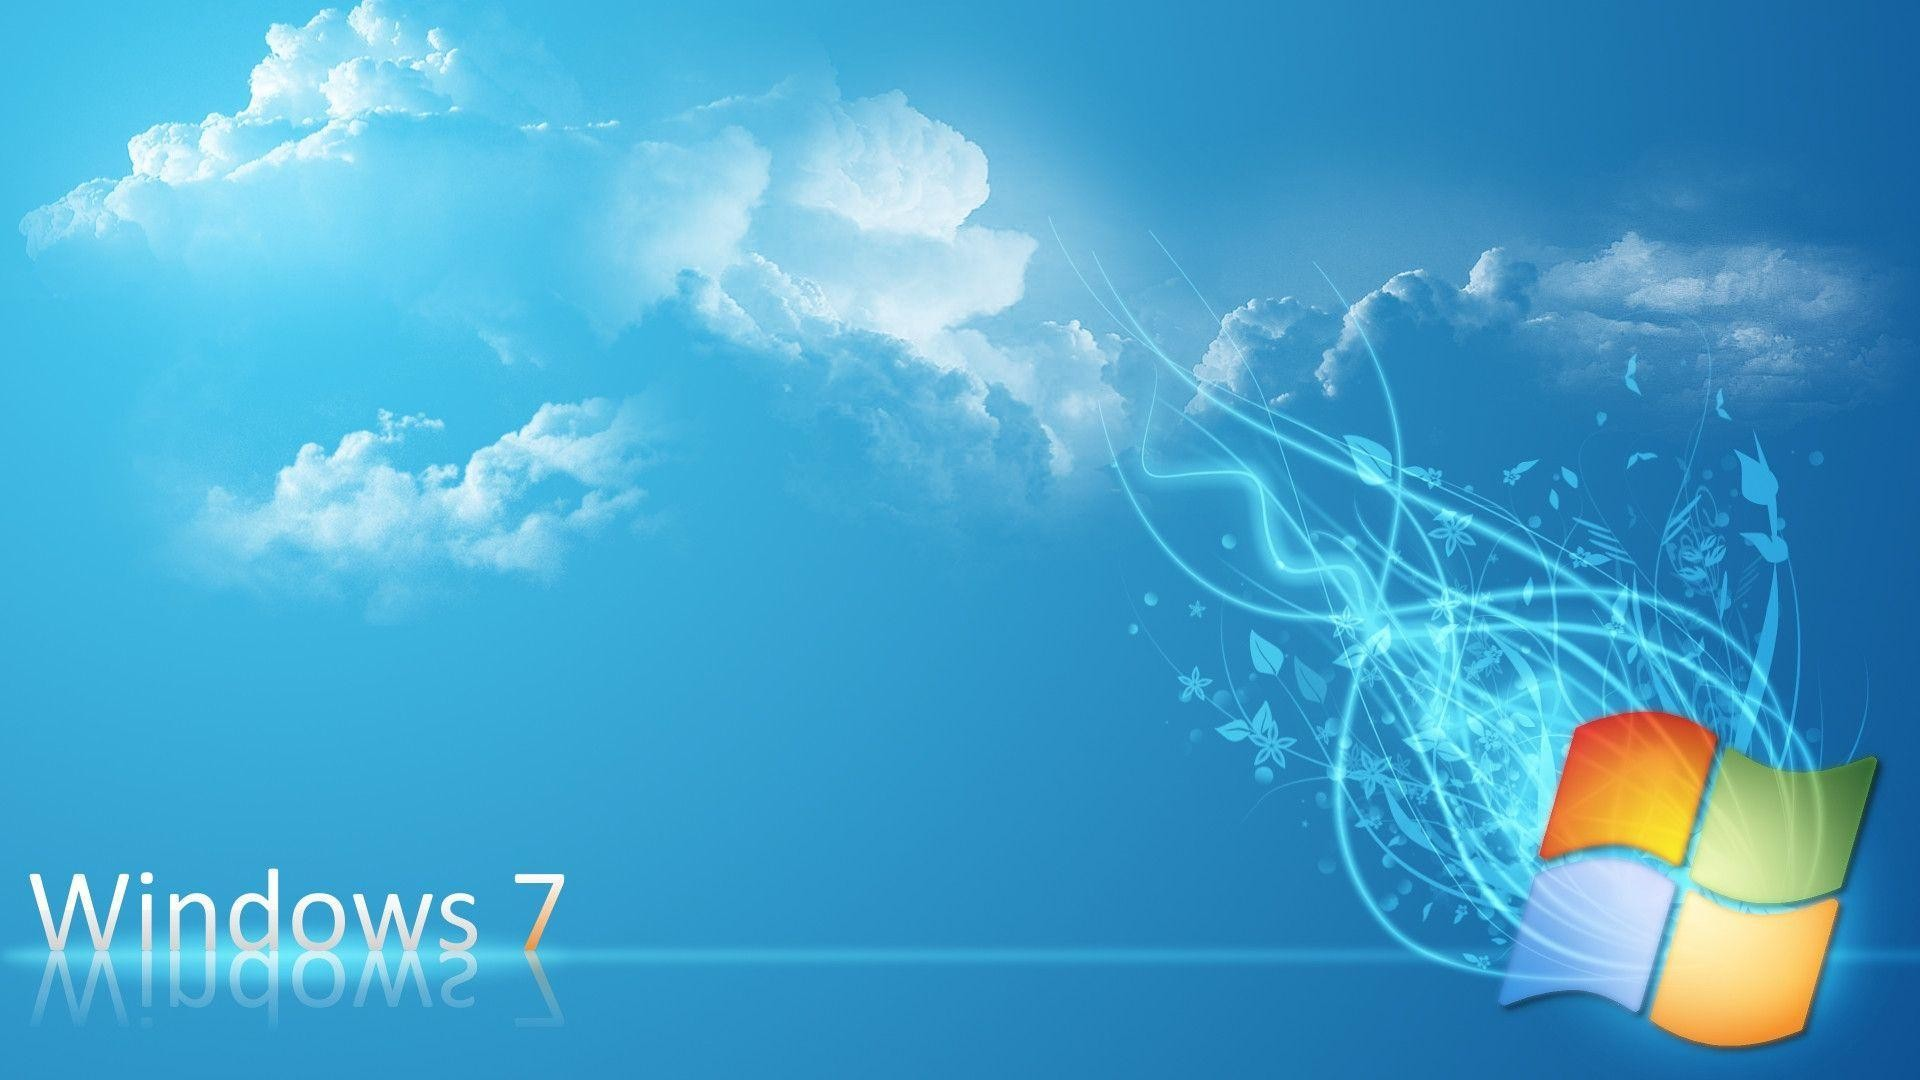 1920x1080 Windows 7 Wallpapers Hd Download Blue Sky Imag #5560 Wallpaper .